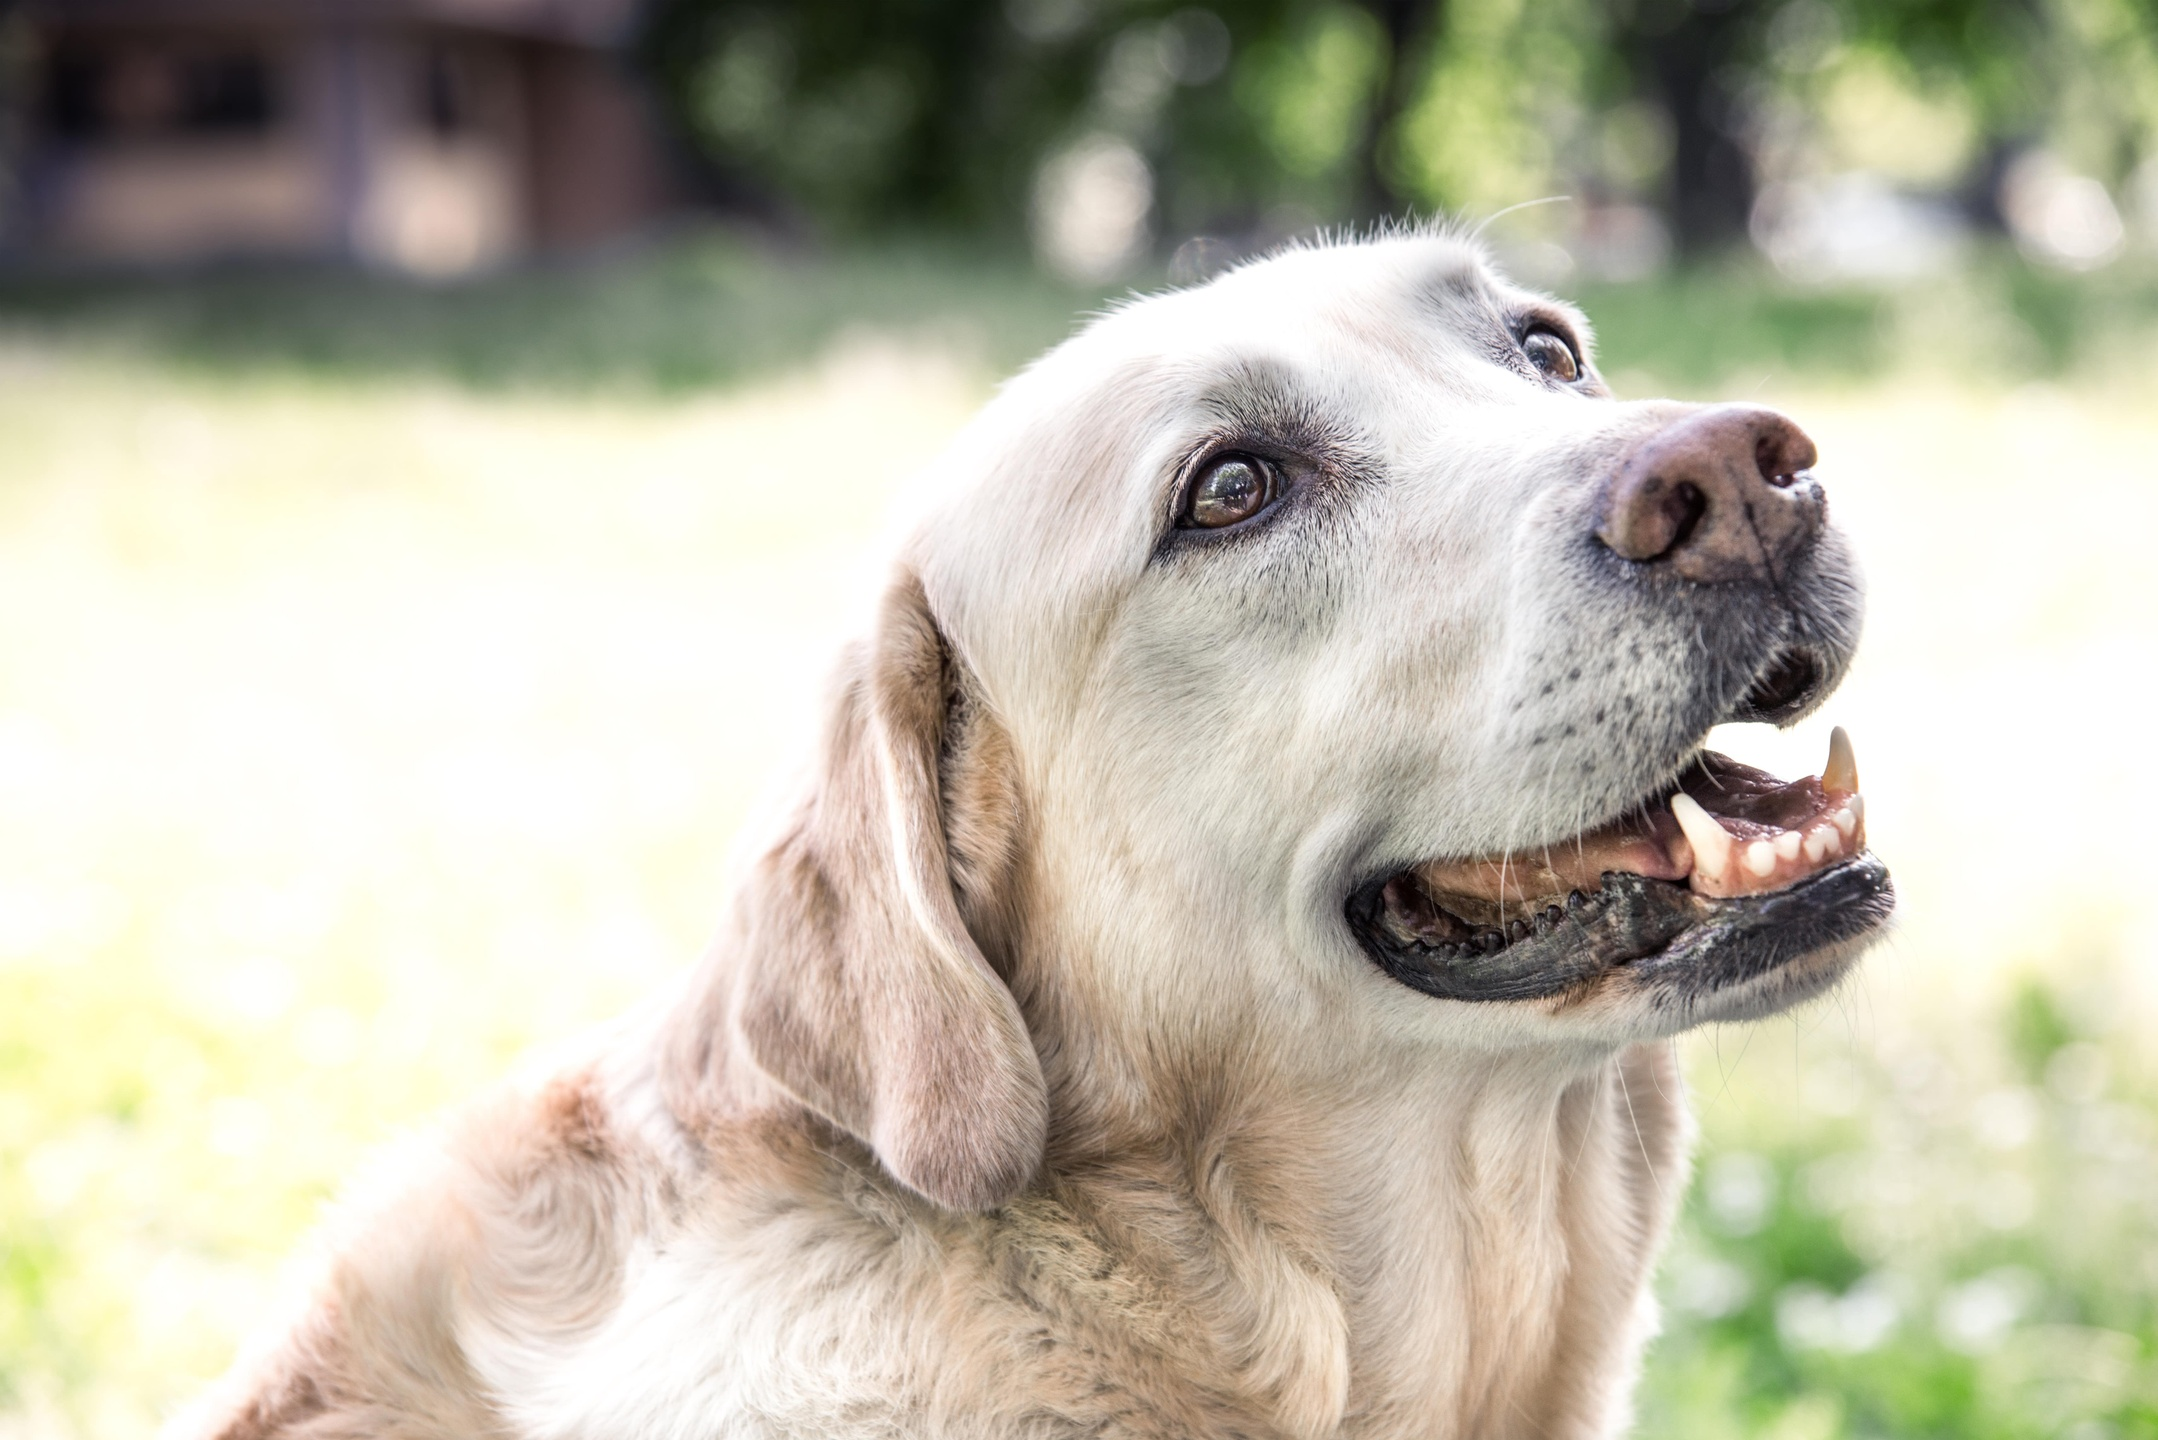 A beautiful Labrador Retriever ready for Dog Training and Dog-Friendly Outdoor Activities in Dallas, Texas